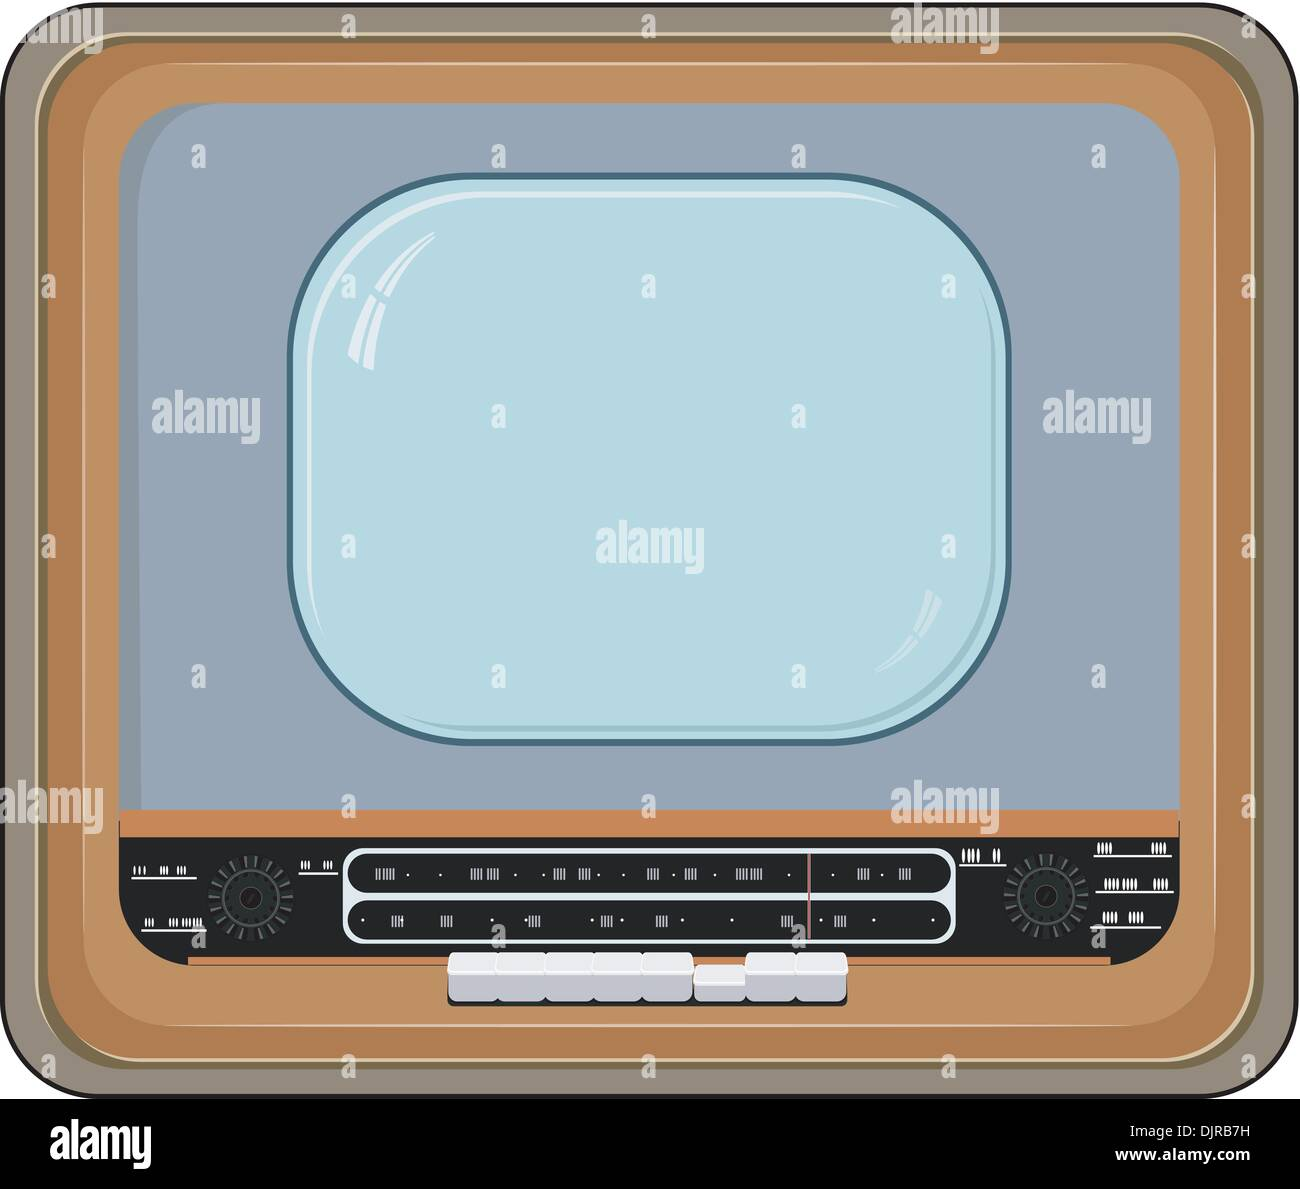 Vector illustration of an old TV set with wooden case - Stock Vector